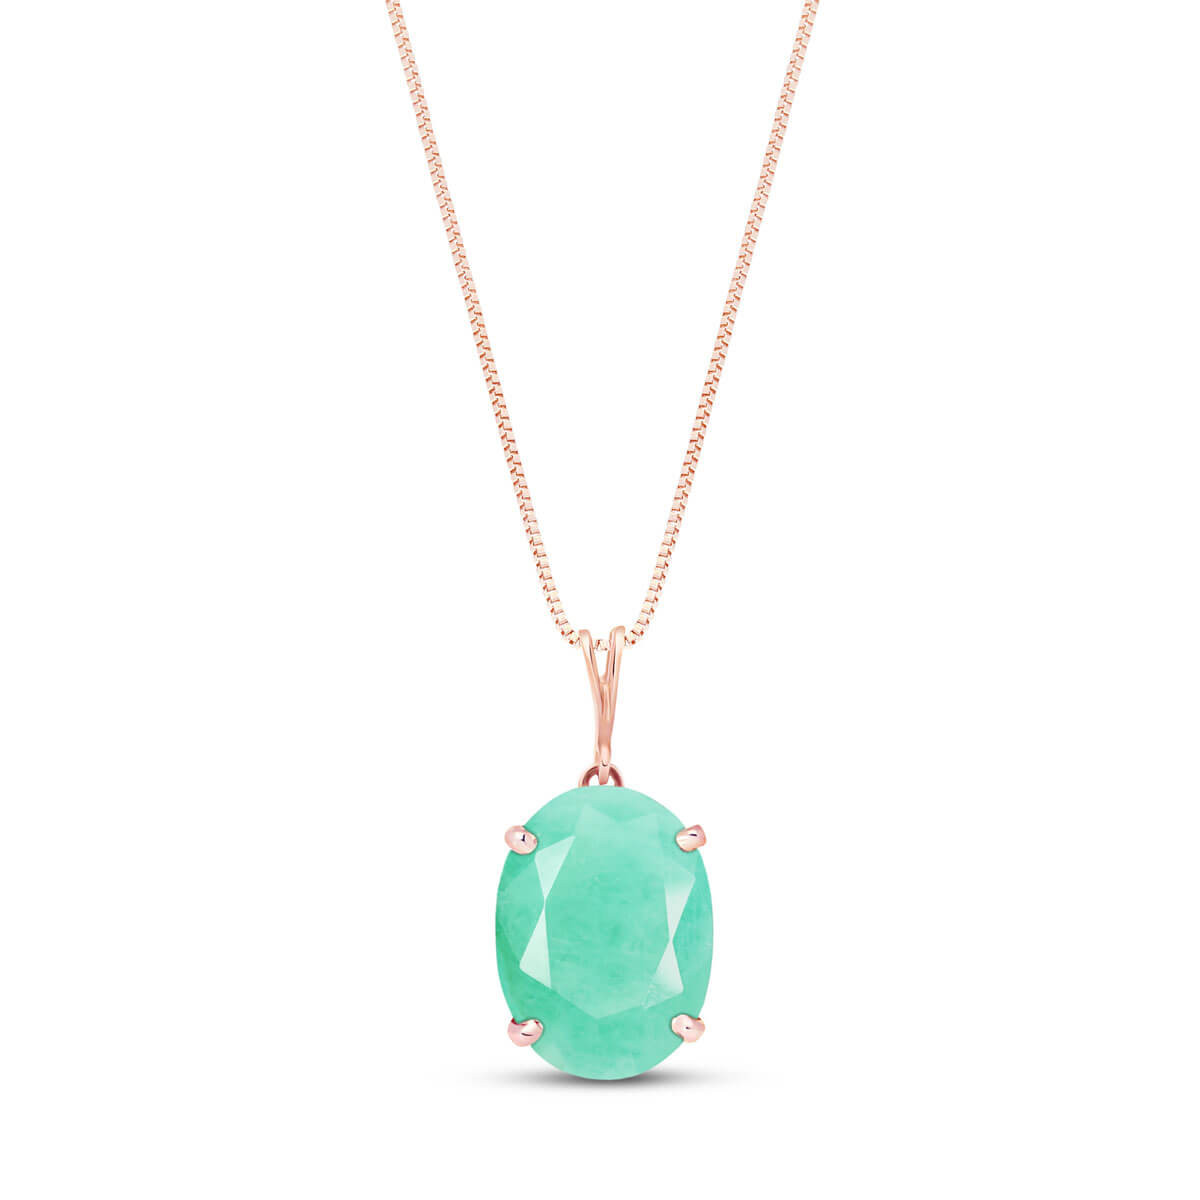 Emerald Oval Pendant Necklace 6.5 ct in 9ct Rose Gold